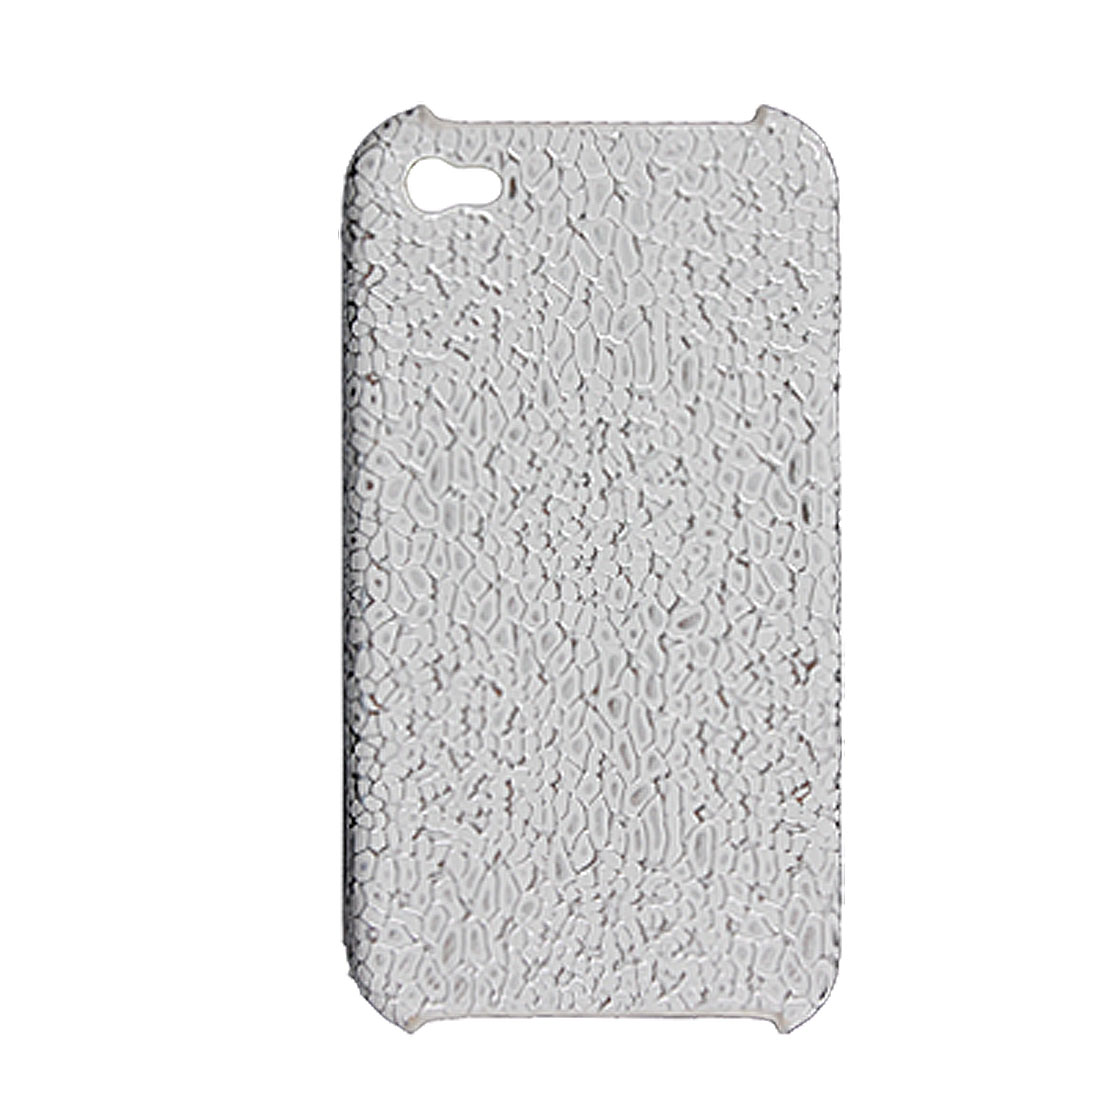 White Silver Tone Textured Faux Leather Coated Plastic Case for iPhone 4 4G